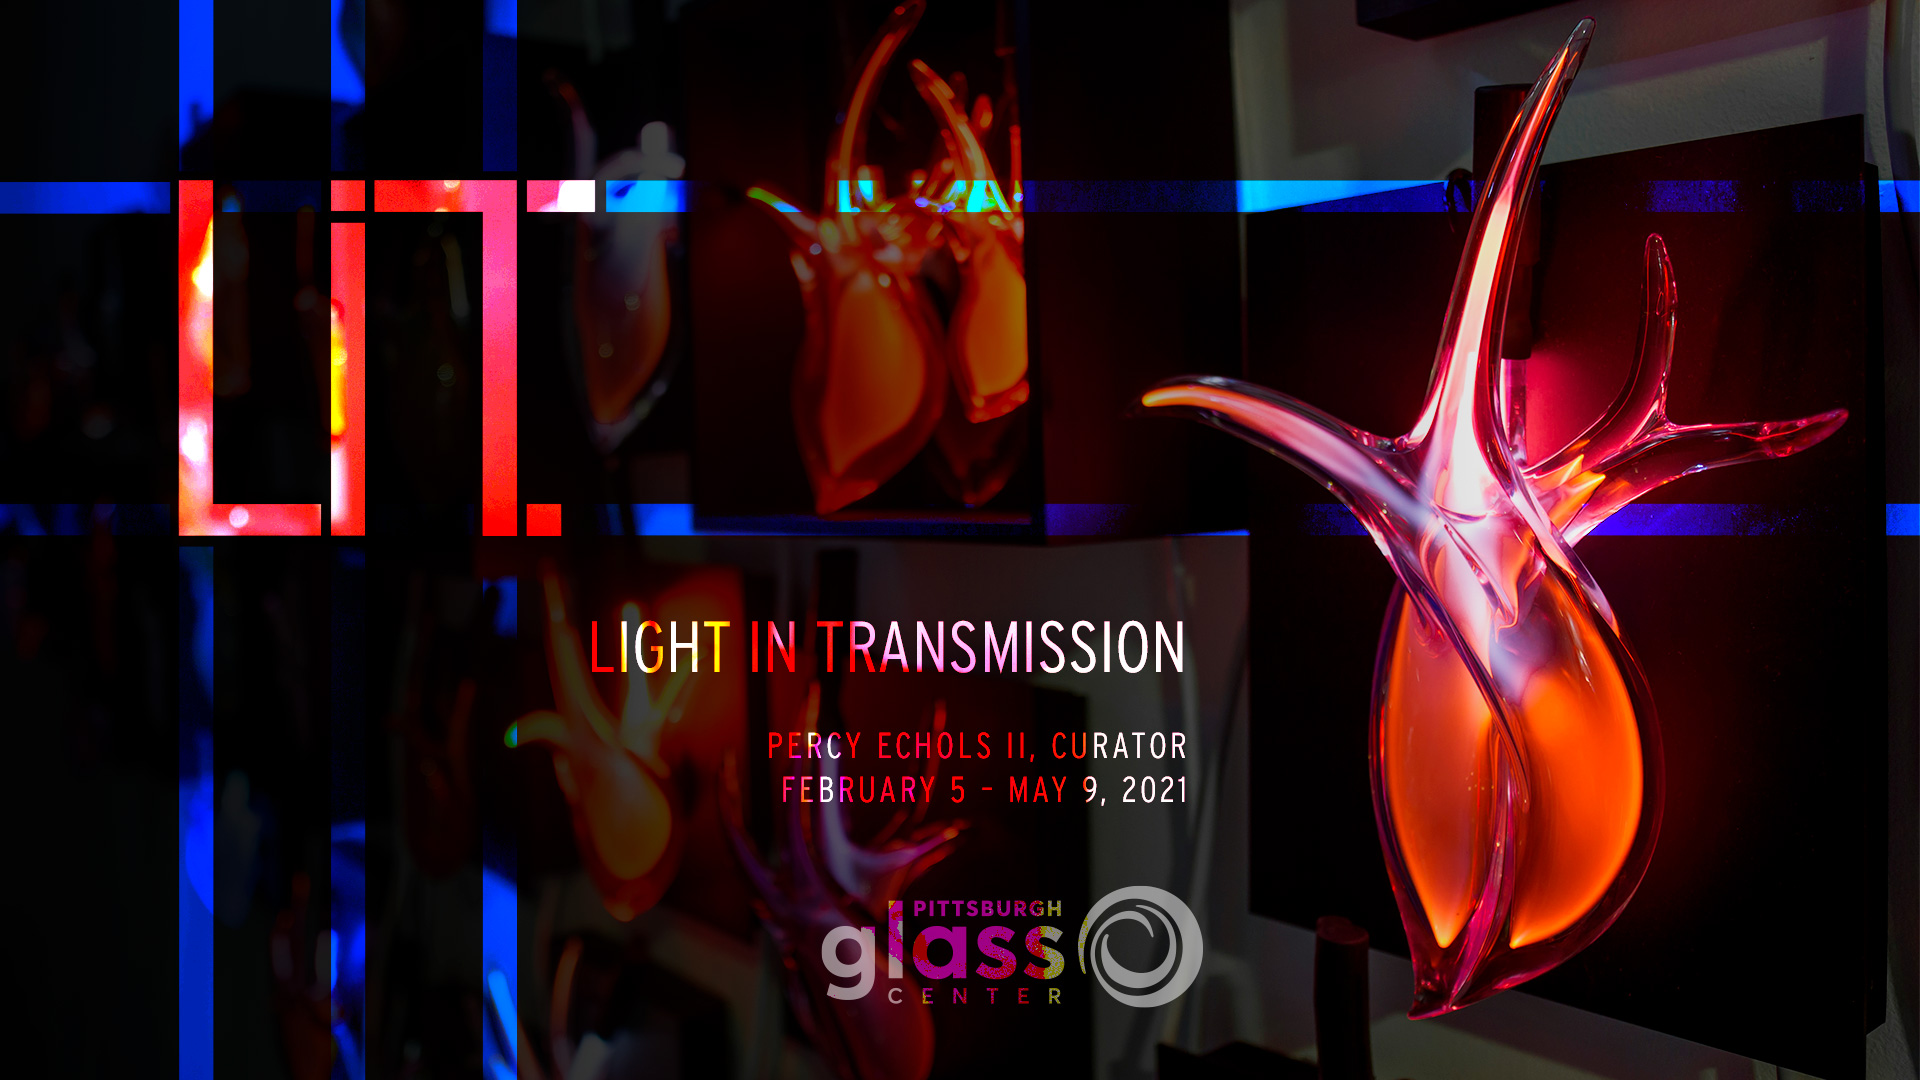 LIT: Light in Transmission exhibition at Pittsburgh Glass Center